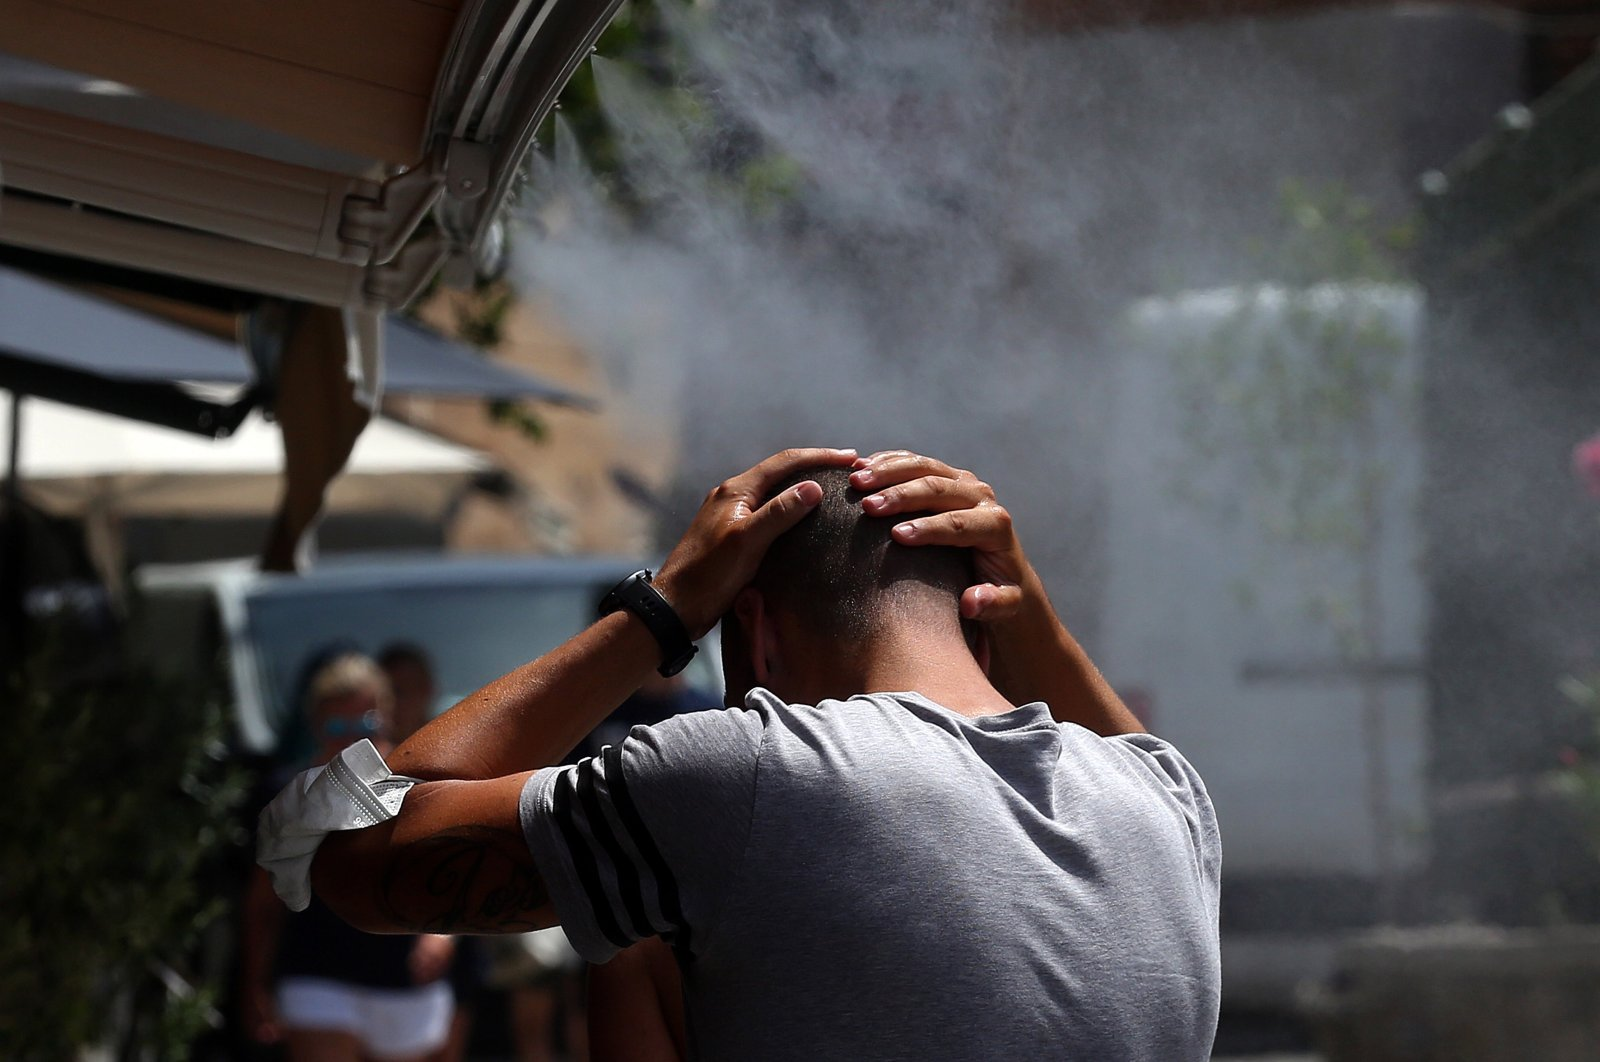 People cool off using a water spray device during a heat wave, in Athens, Greece, Aug. 2, 2021. (EPA Photo)